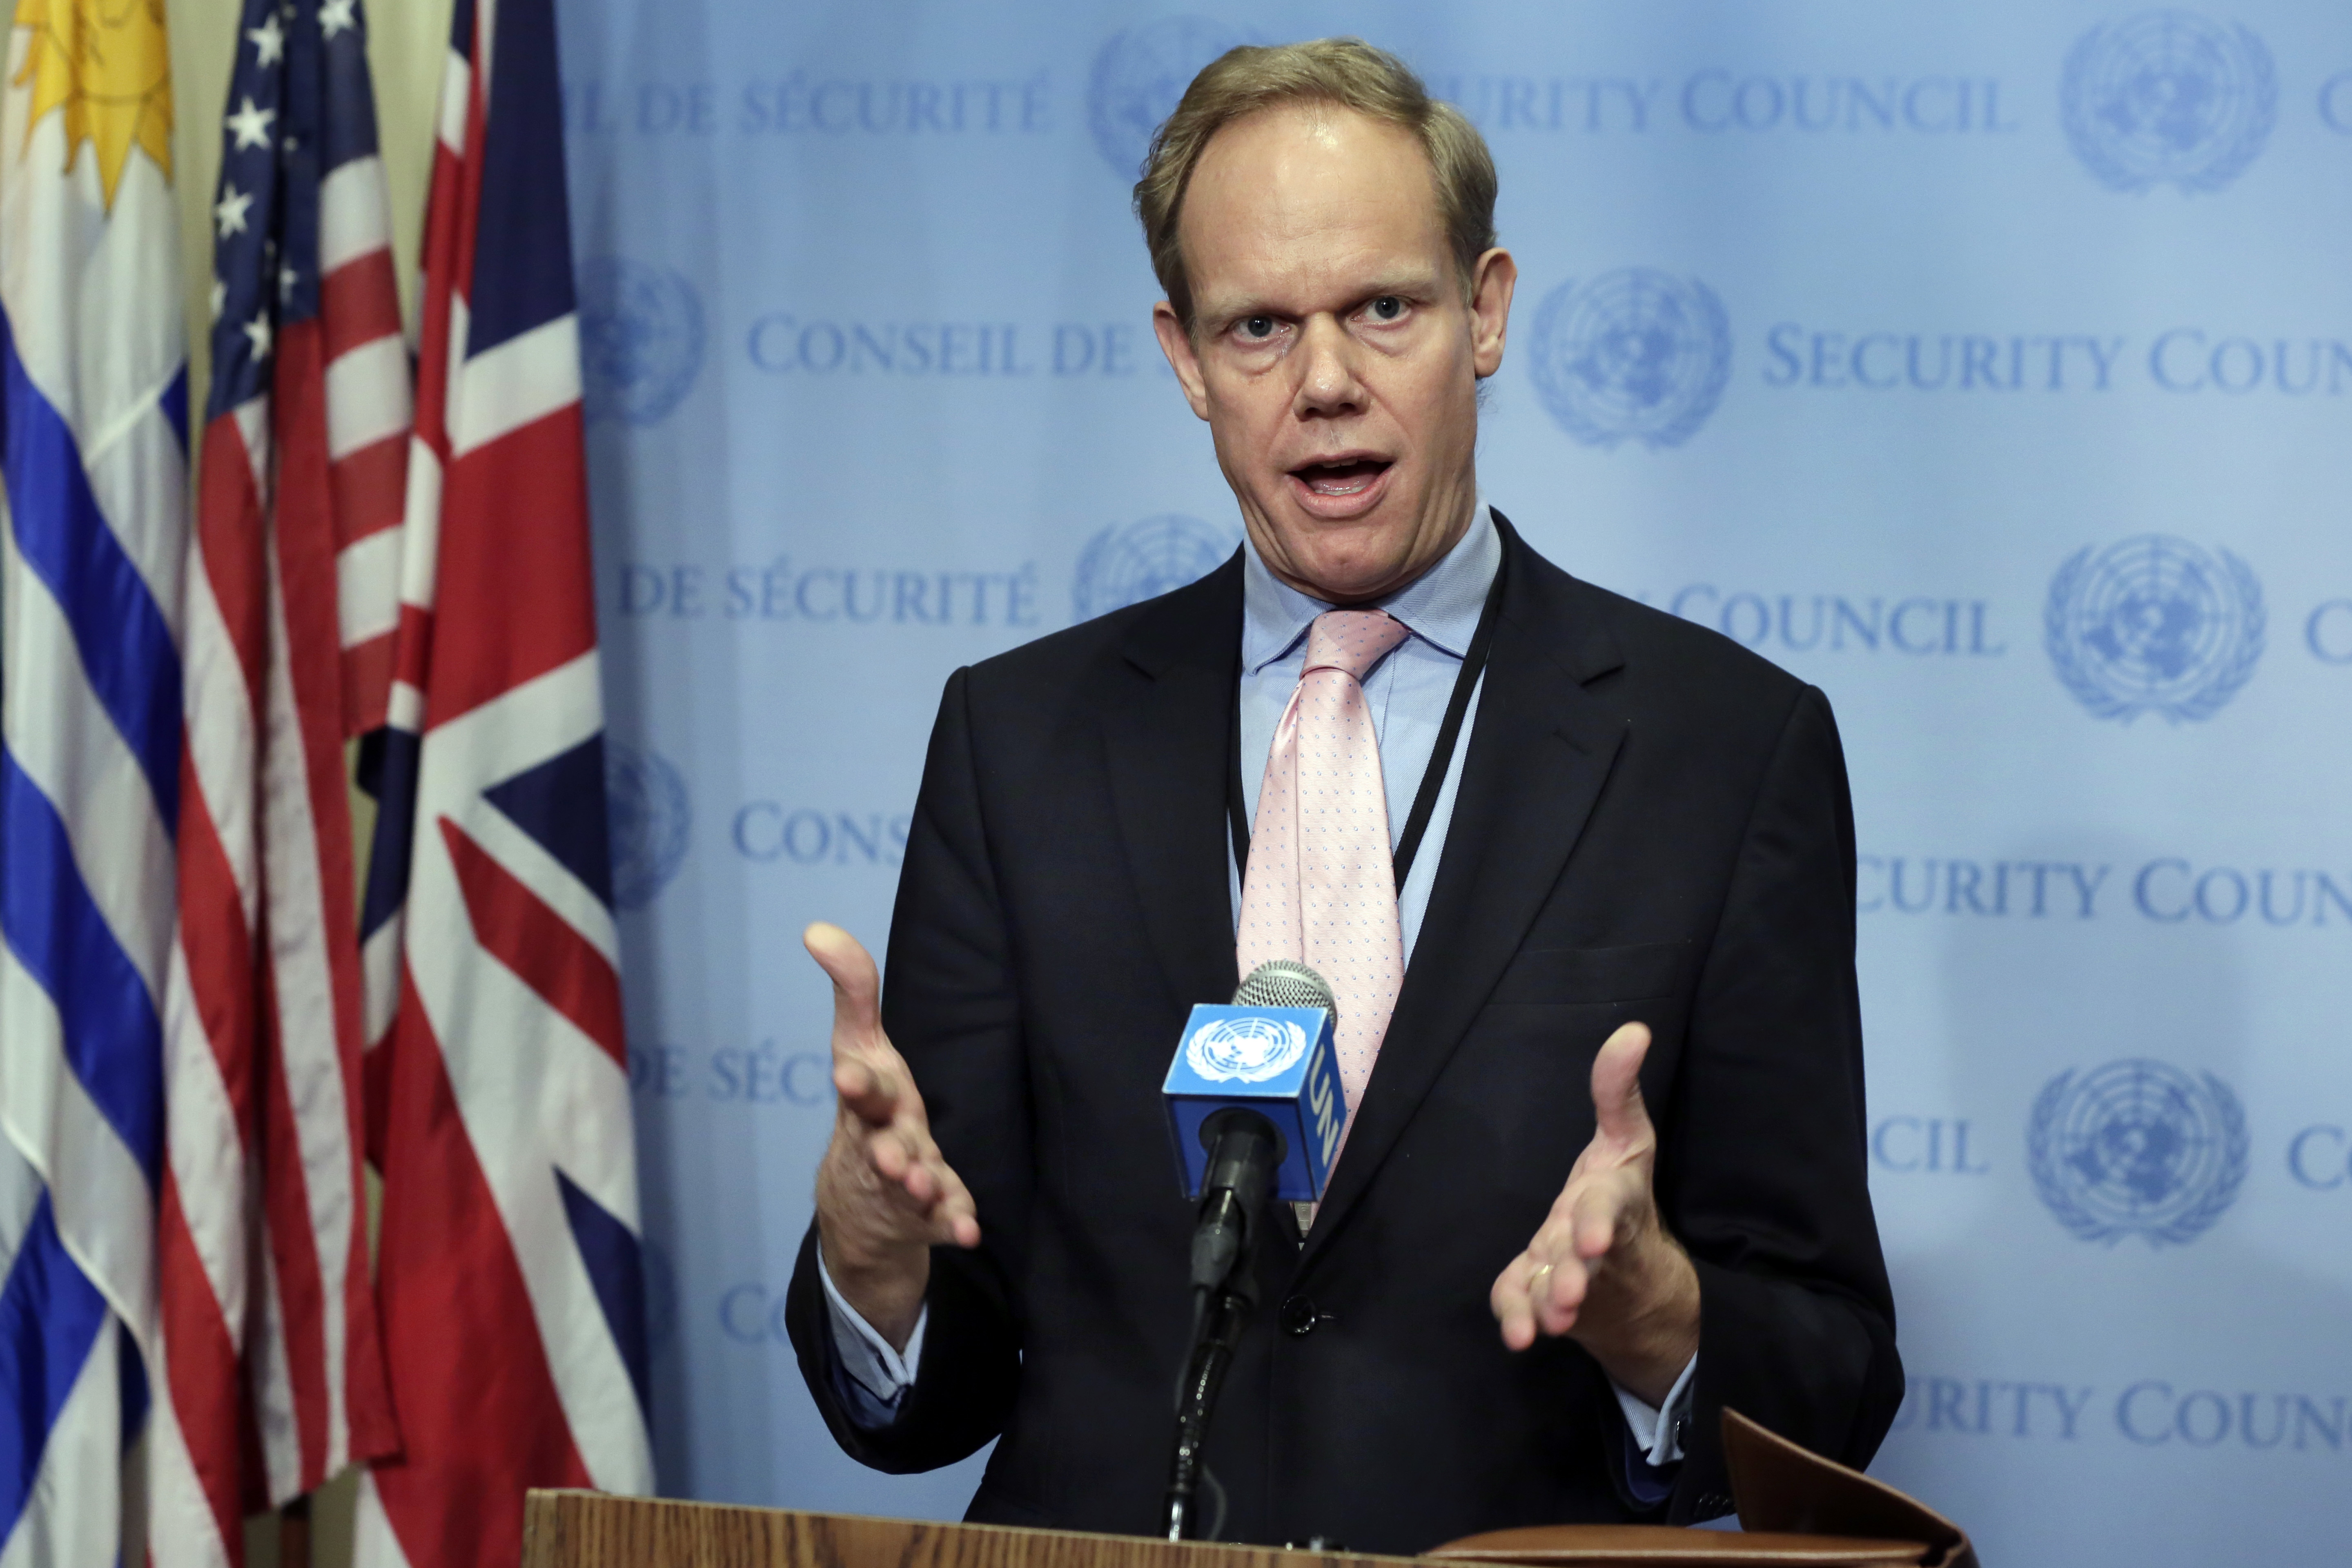 Britain's Ambassador Matthew Rycroft speaks during news conference after consultations of the United Nations Security Council on March 8, 2017. (AP Photo/Richard Drew)